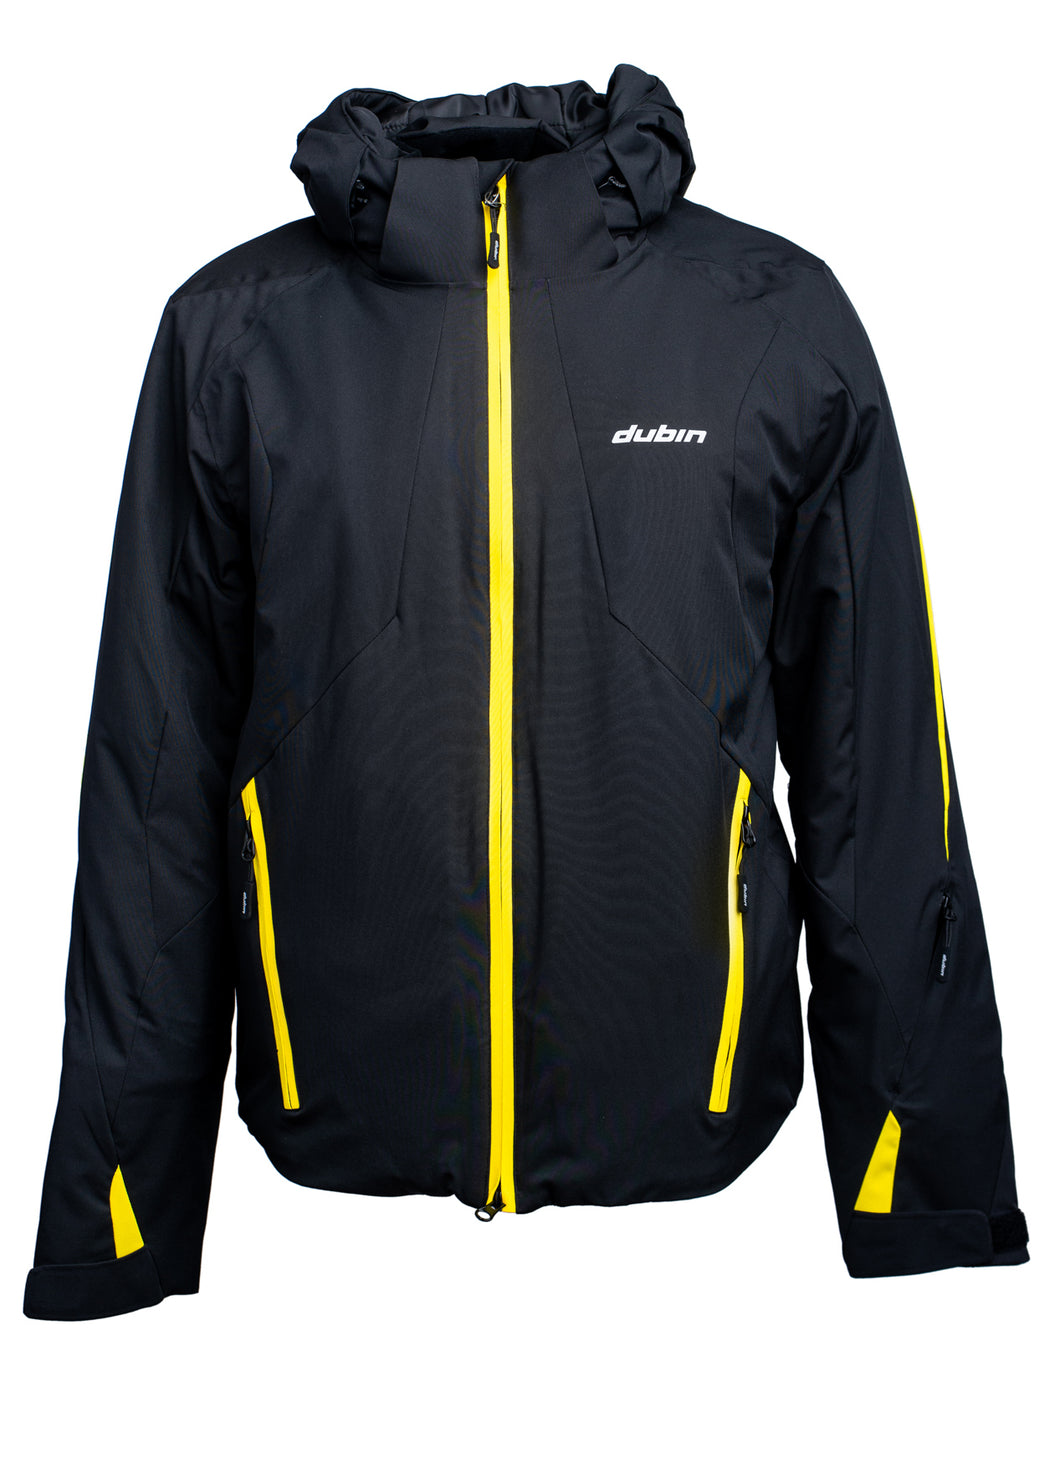 GIACCA SCI EVEREST 10K 3M THINSULATE - BLACK/YELLOW